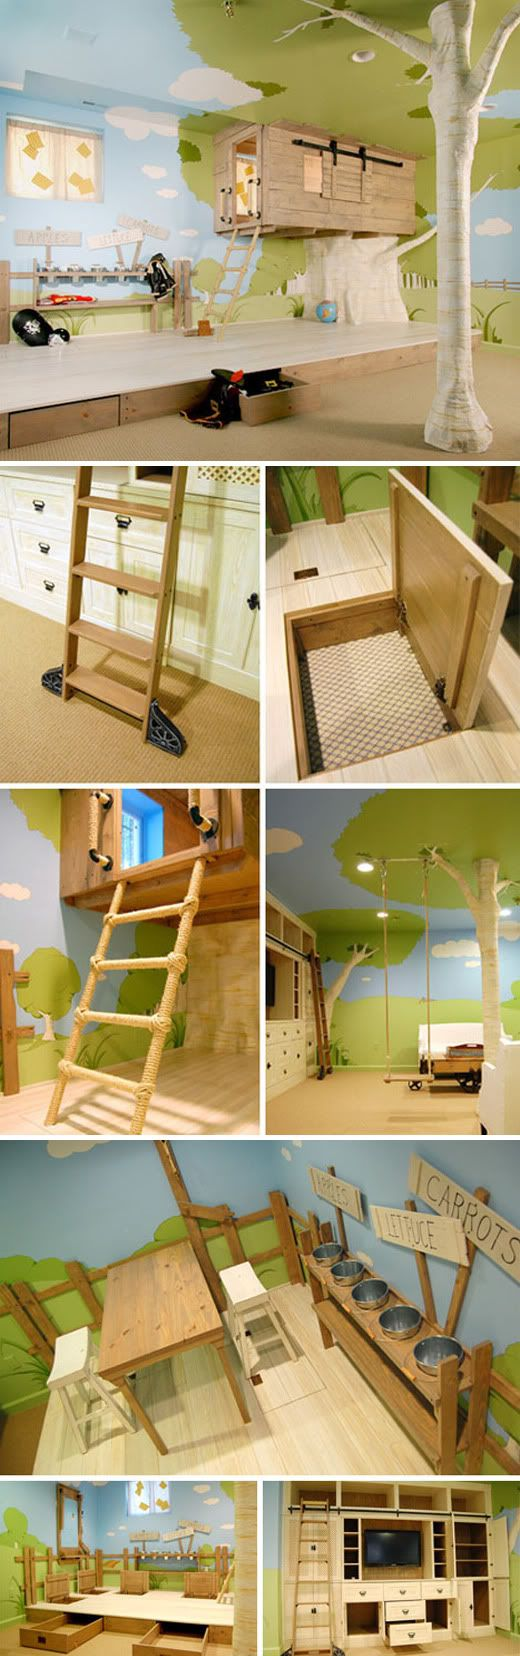 ber ideen zu indoor spielplatz auf pinterest. Black Bedroom Furniture Sets. Home Design Ideas